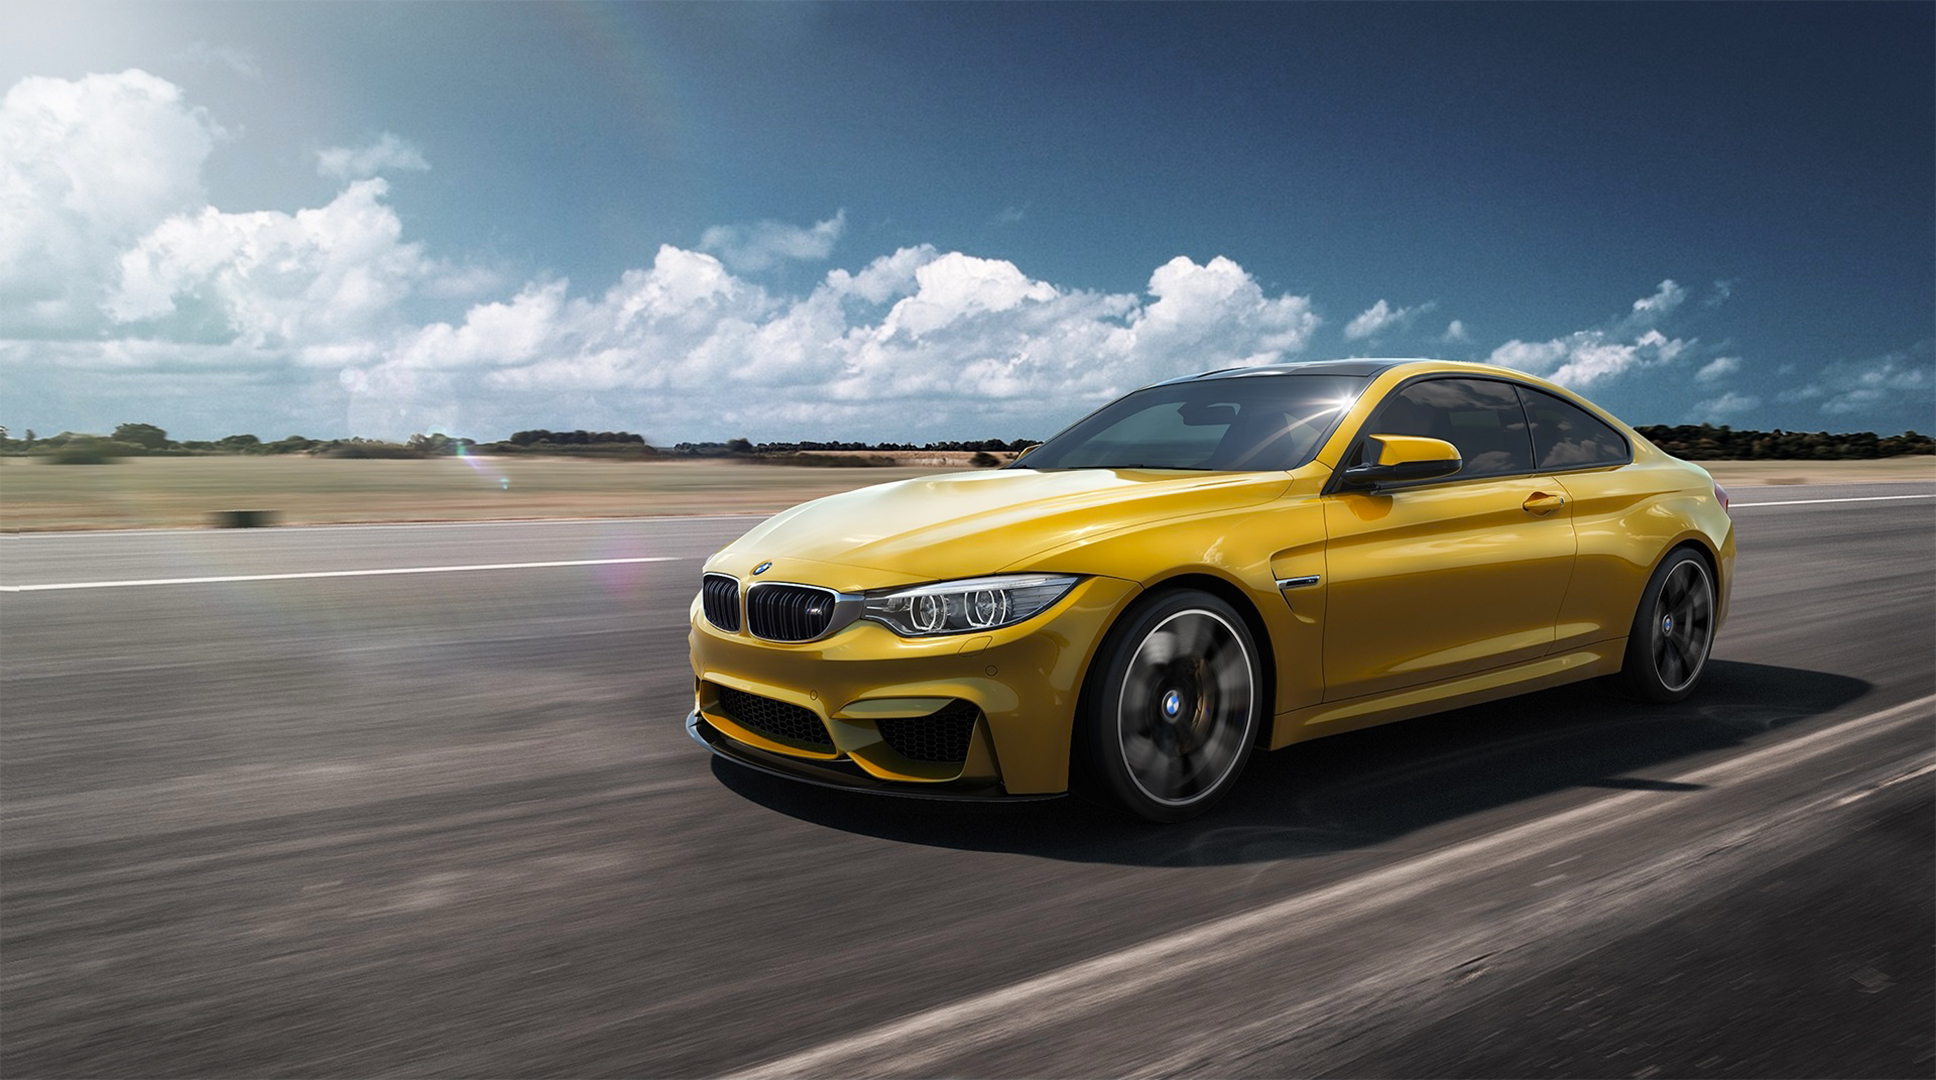 bmw m4 wallpaper hd wwwpixsharkcom images galleries